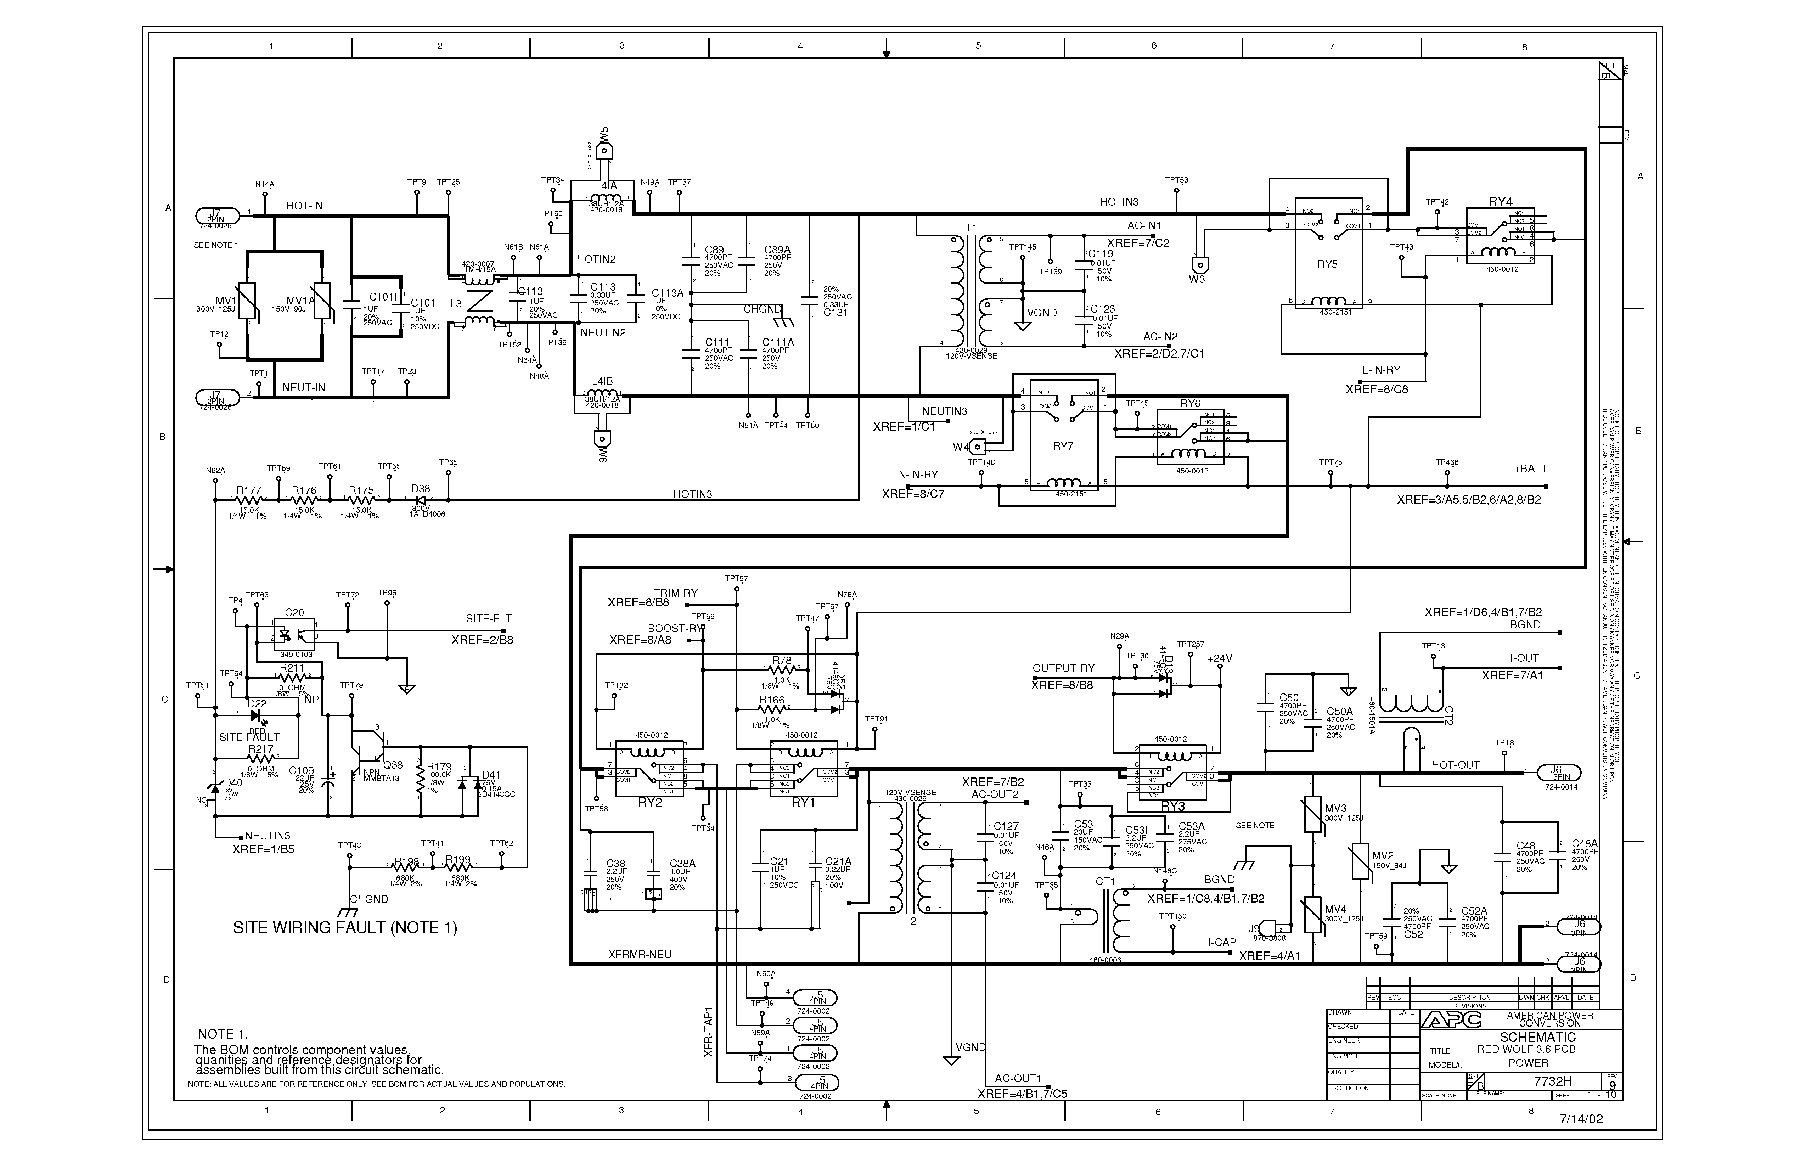 apc 900 xp wiring diagram 2011 polaris ranger xp wiring diagram #3